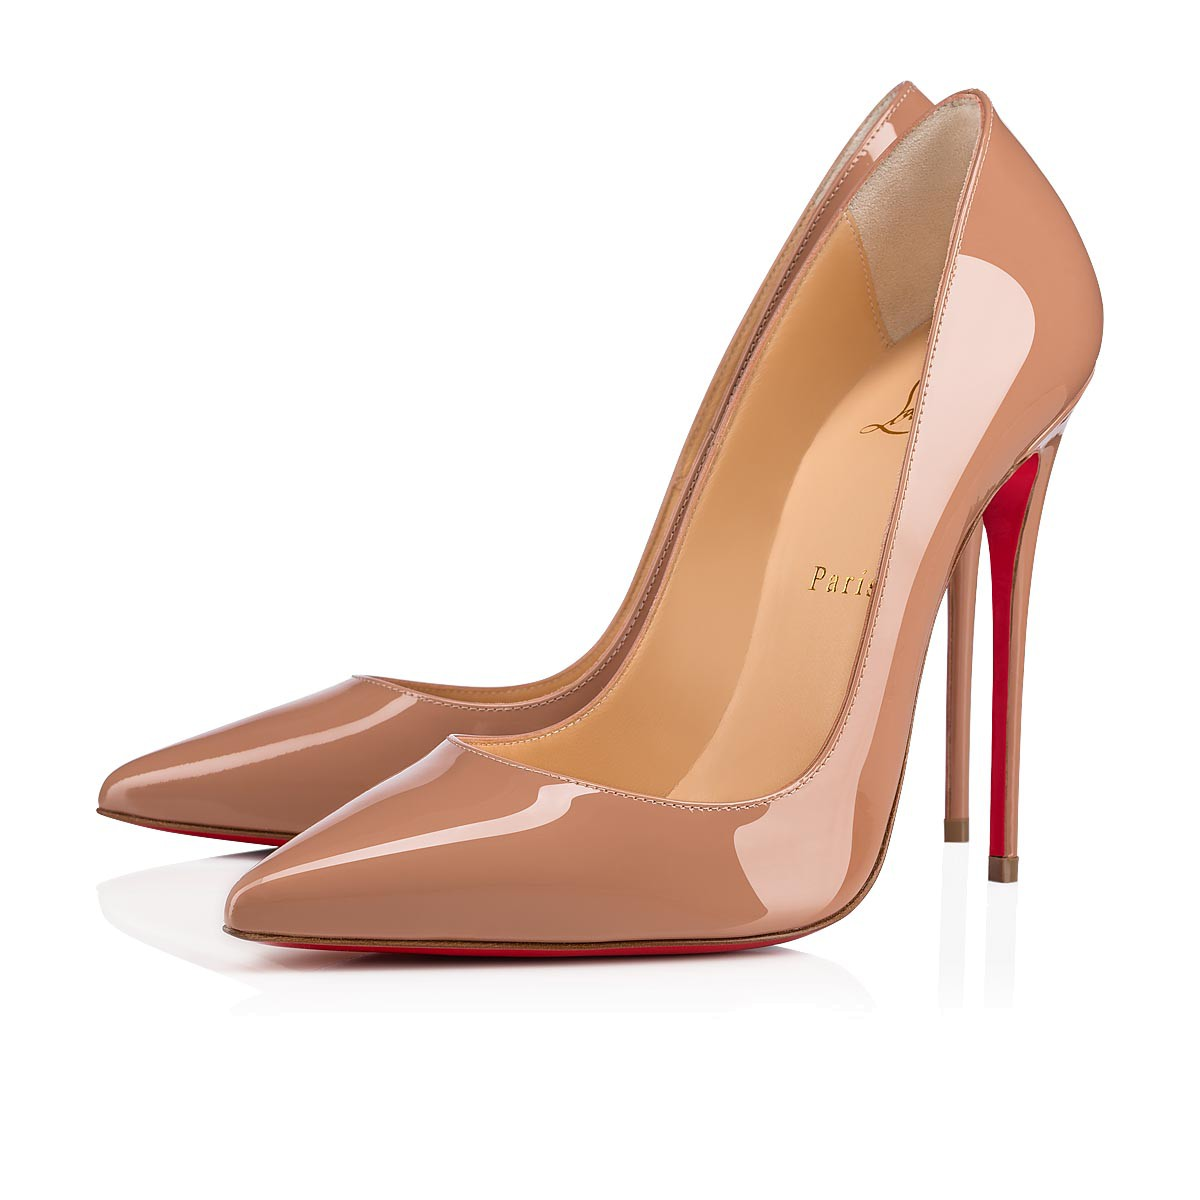 wholesale dealer 50081 2d2de So Kate 120 Nude Patent Leather - Women Shoes - Christian Louboutin